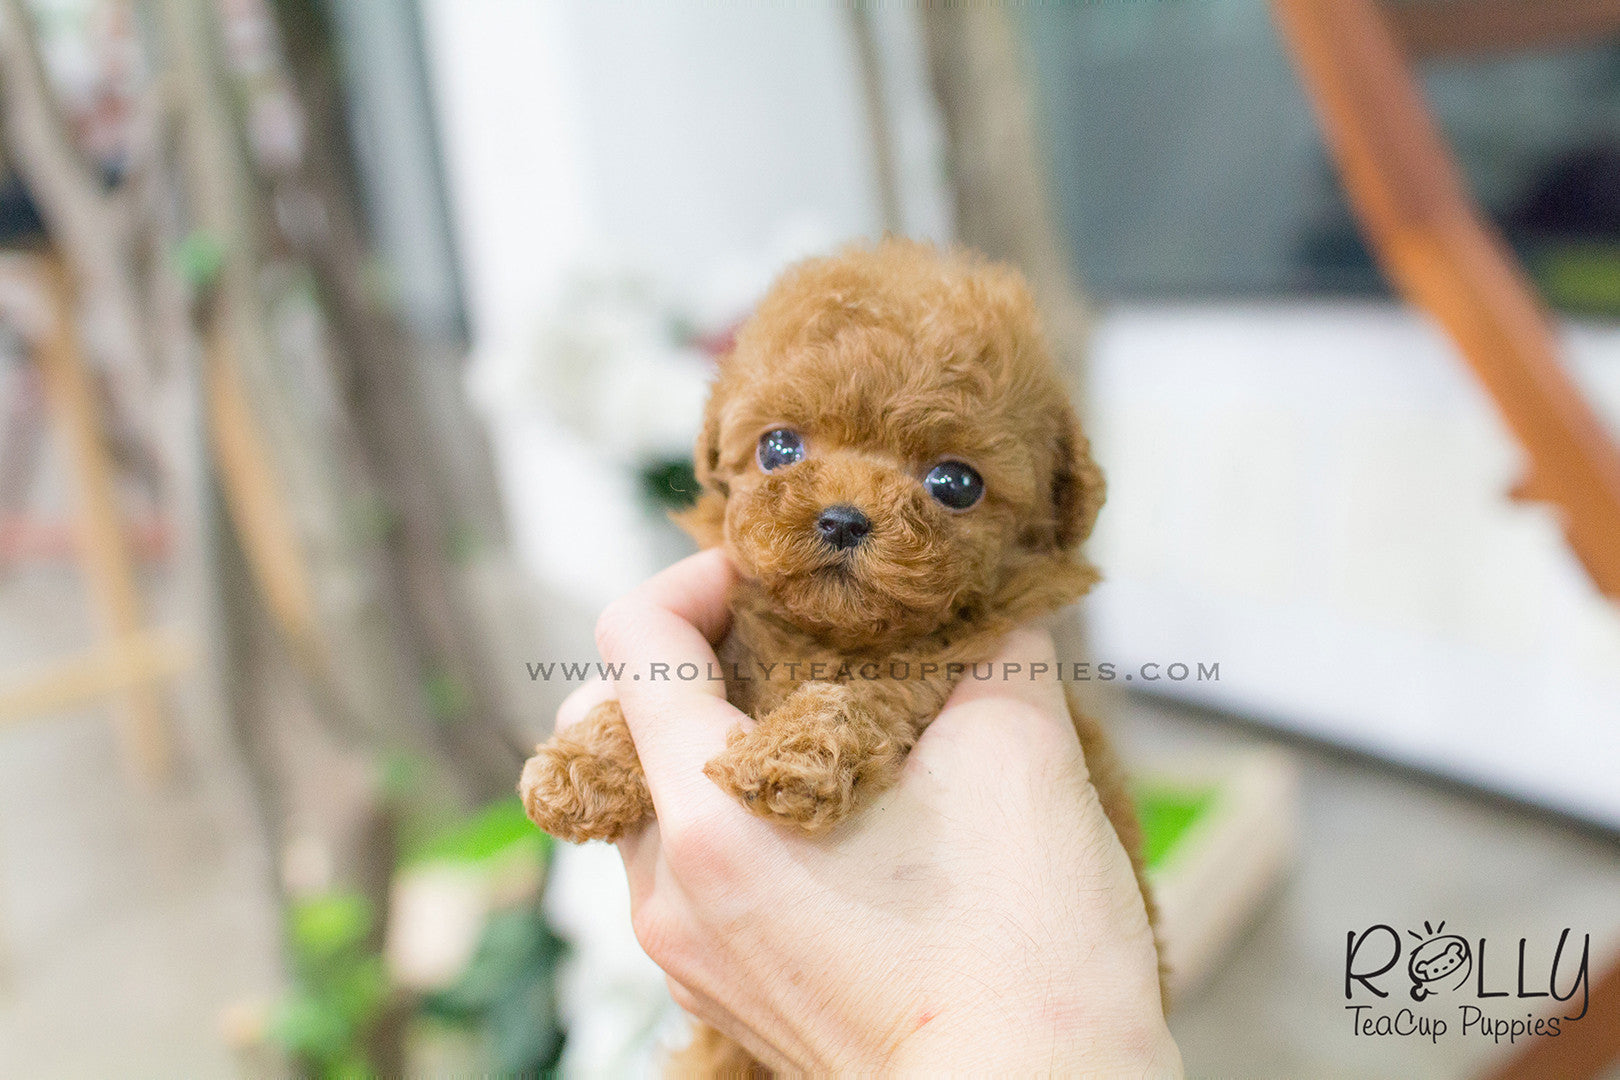 Bambi Poodle Rolly Teacup Puppies